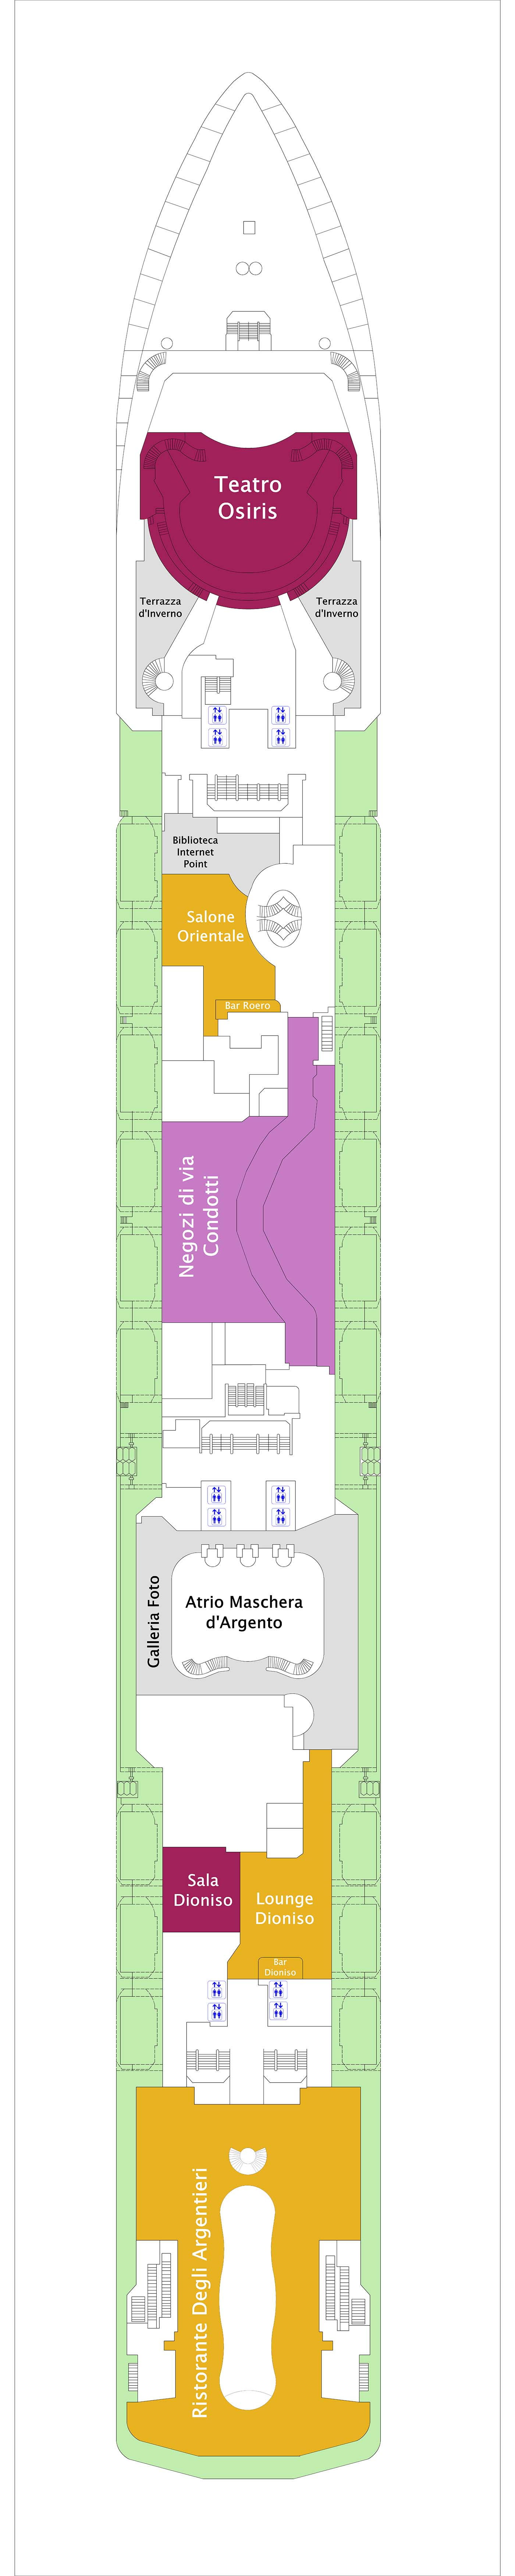 Costa Mediterranea deck plan 3